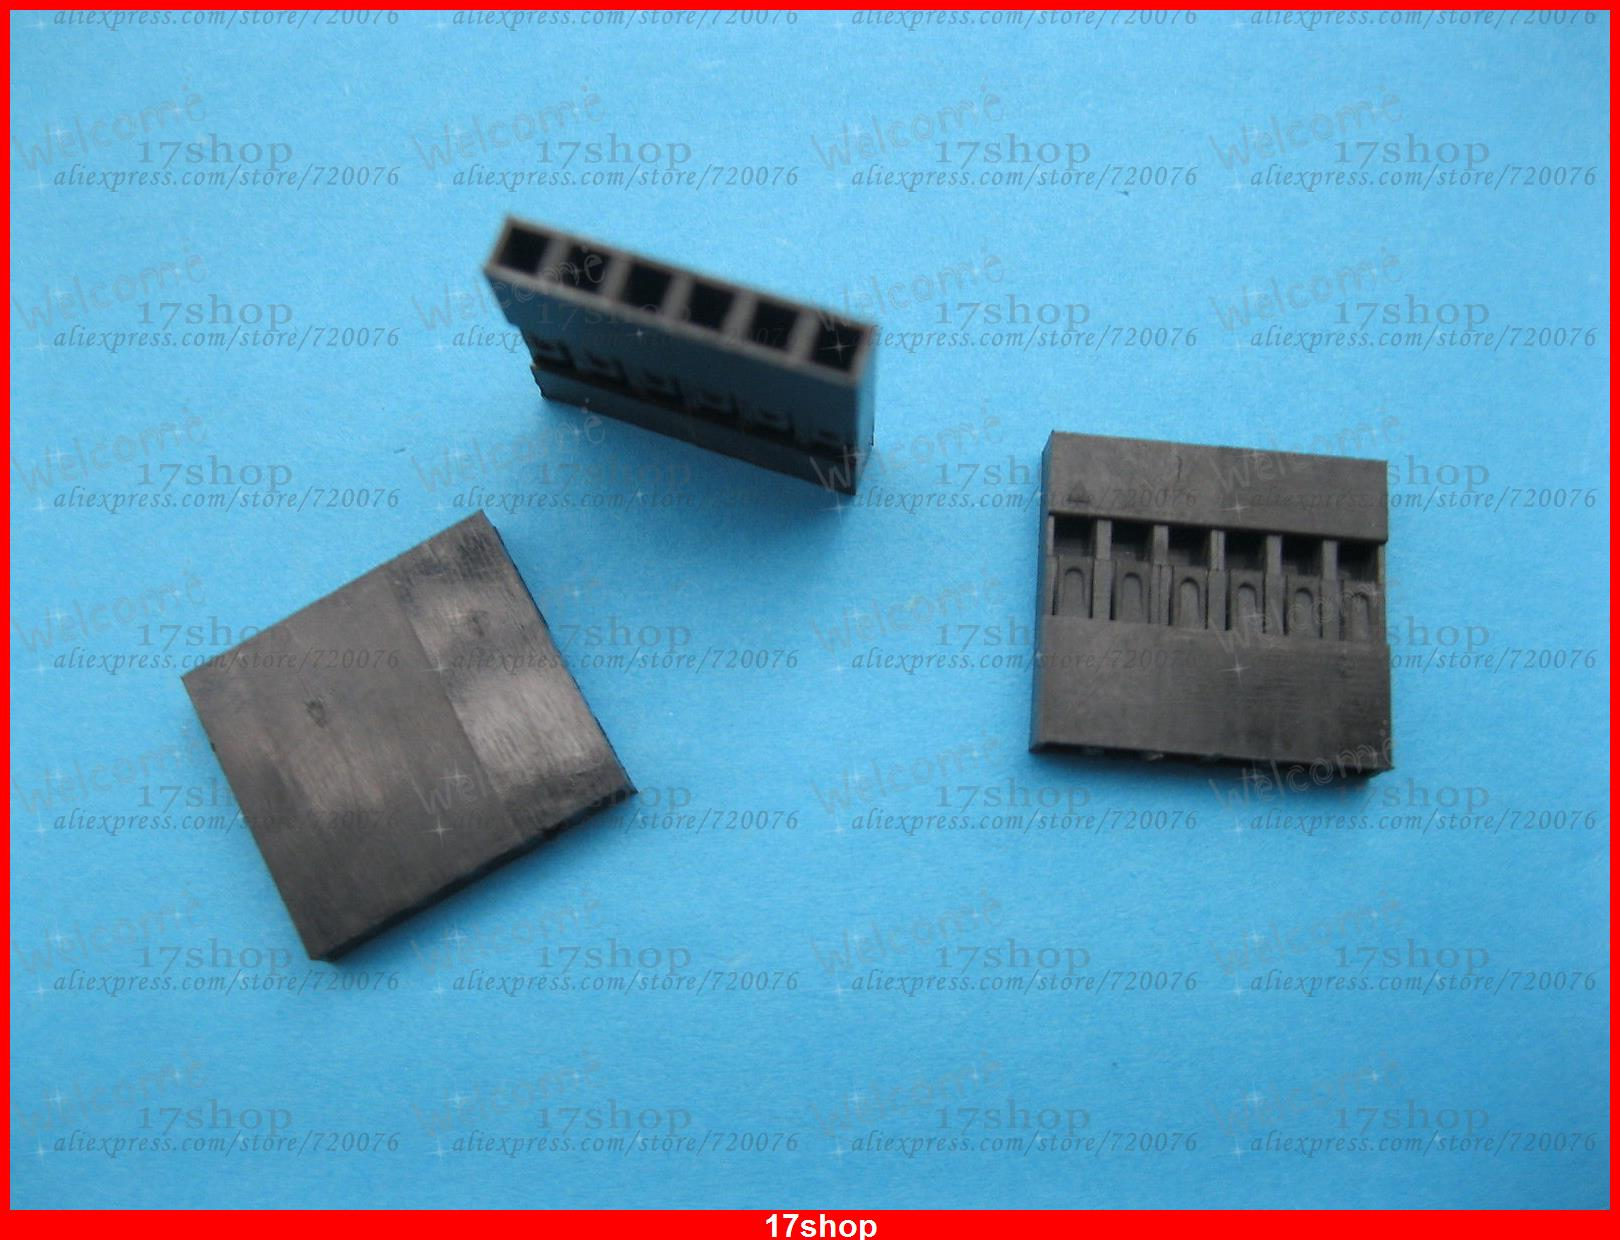 3000 pcs Jumper Wire Female Housing 6 Pin Connector Pitch 2.54mm Black Color